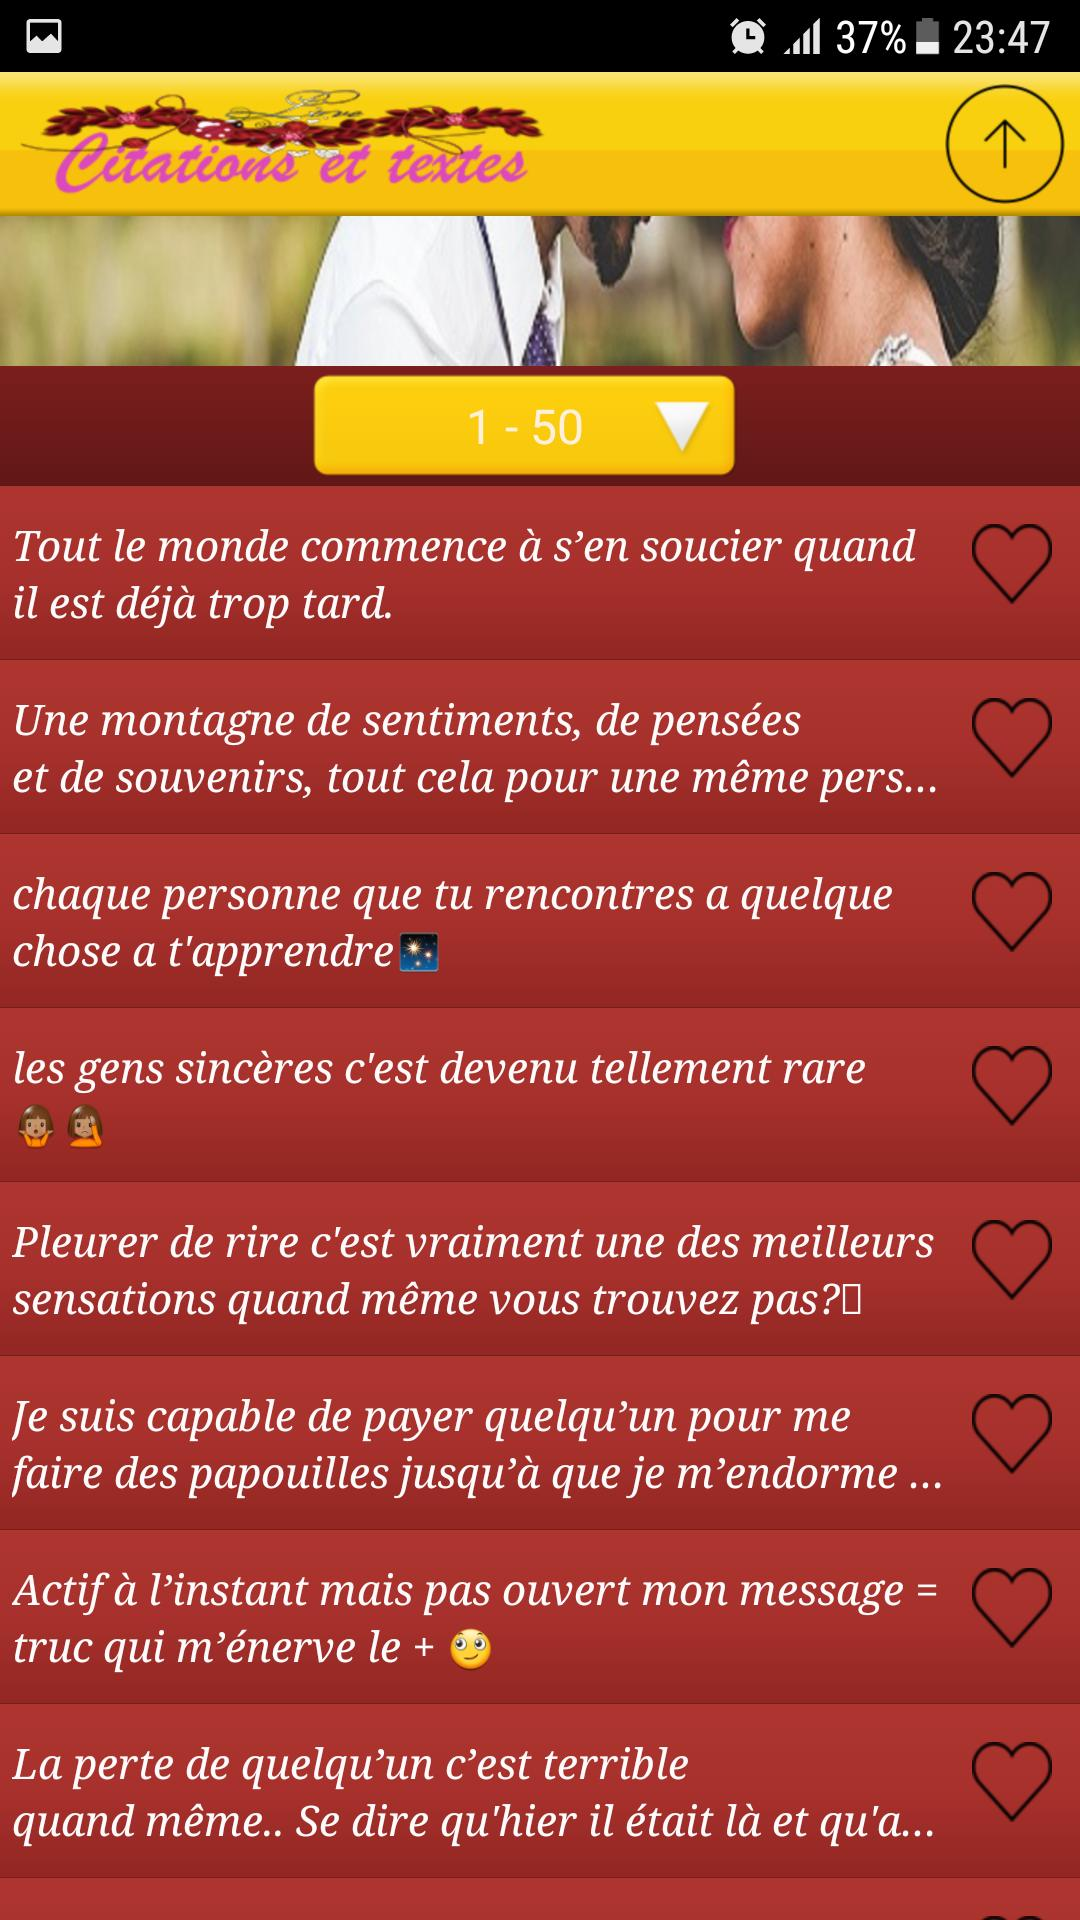 Citations Et Textes Damour 2019 For Android Apk Download